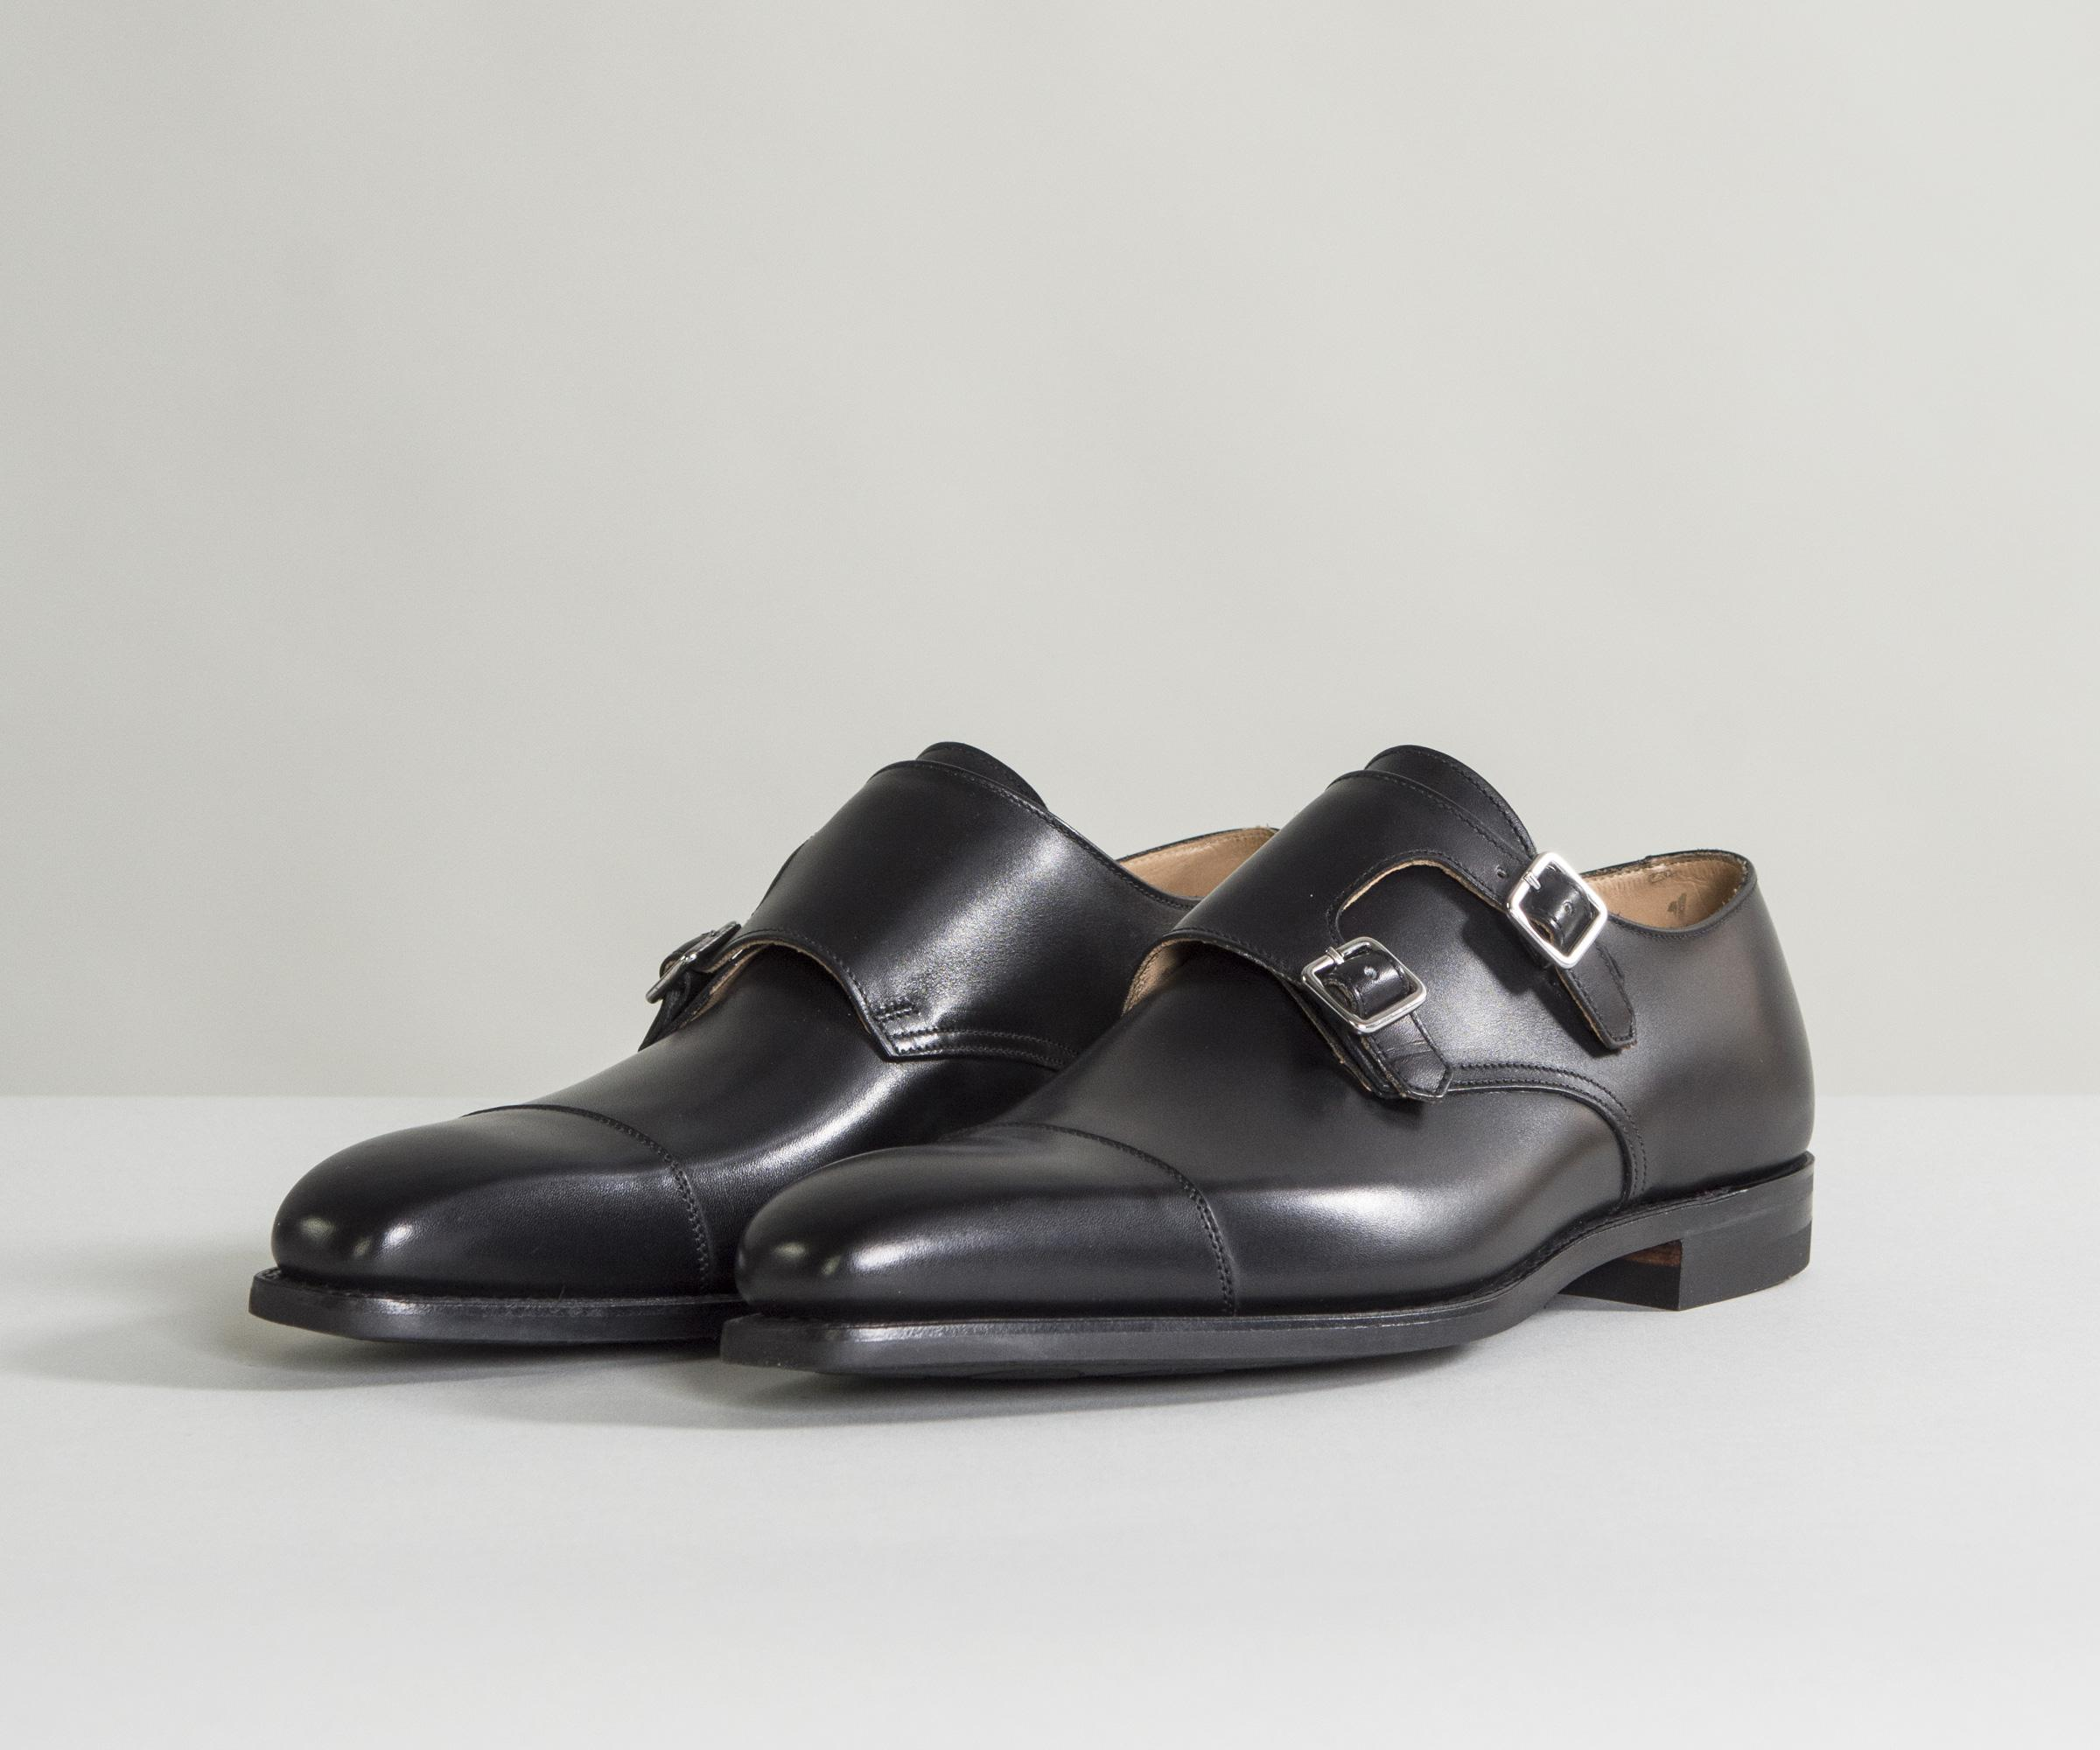 Best Prices Cheap Online Cheap Popular Lowndes Calf Leather Double Monk Shoes With City Soles Black Crockett & Jones Purchase Cheap Online pTOta